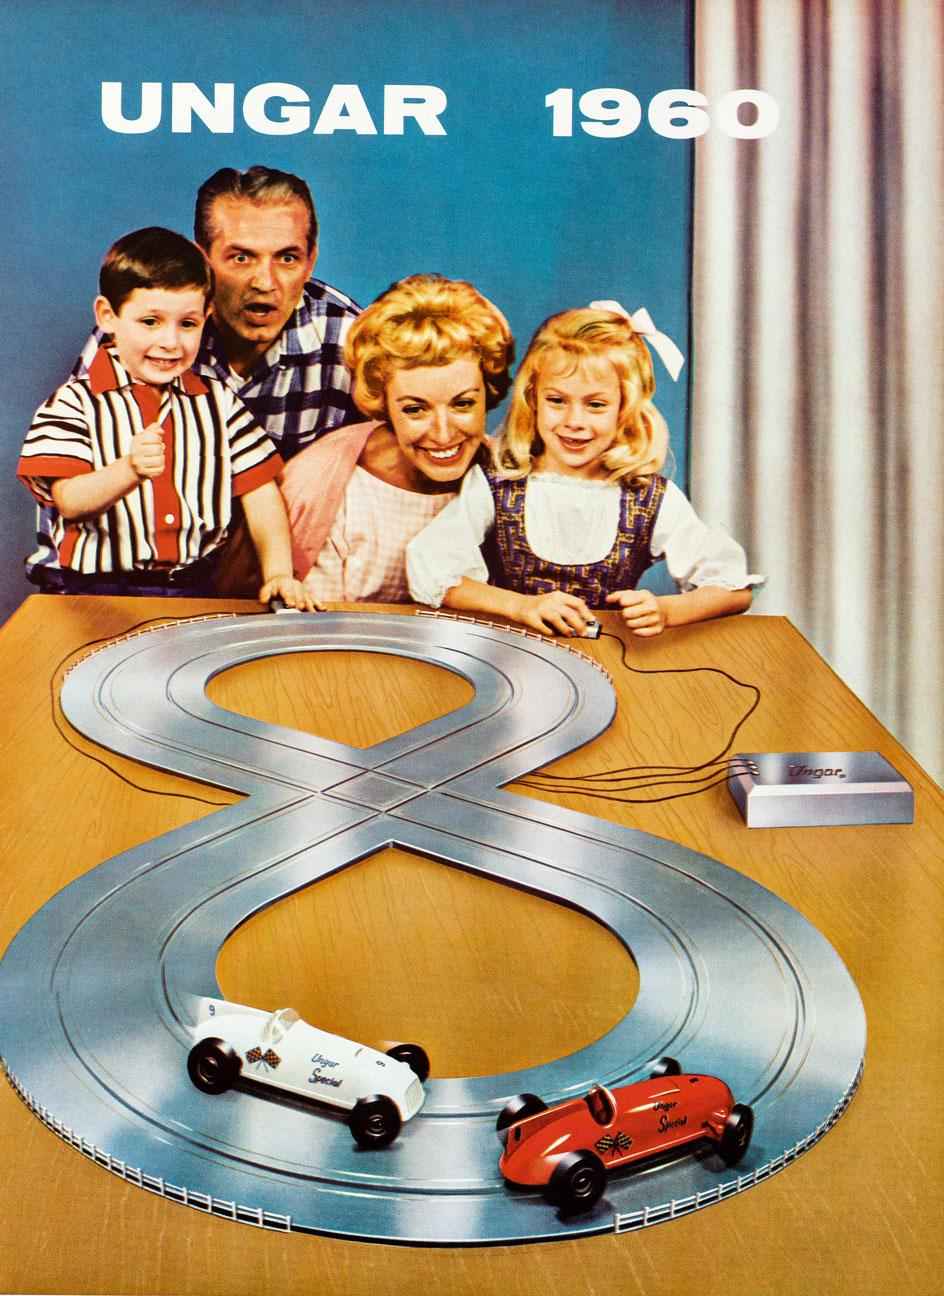 Advert for Ungar train set from 1960 showing a familiar of four. from Toys. 100 Hundred Years of All-American toy advertising